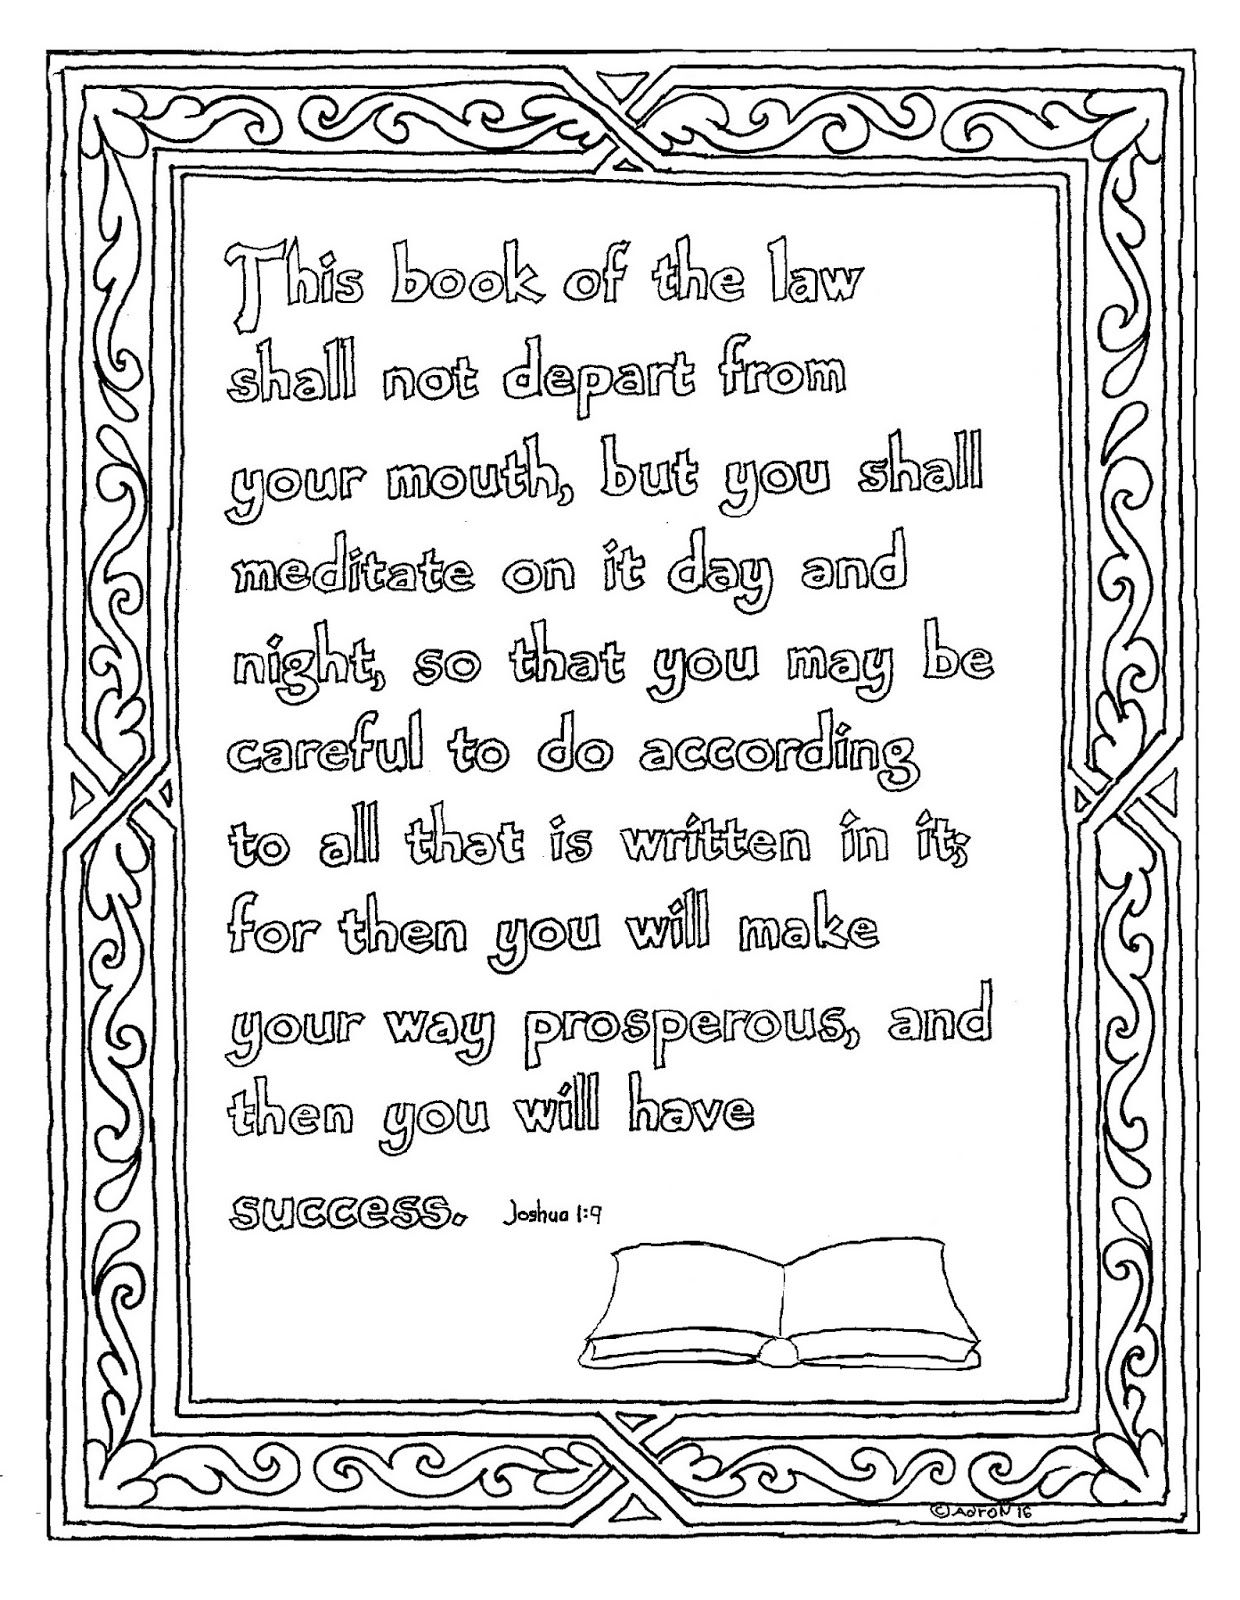 Joshua 18 Printable Bible Verse Coloring Page This Is Not Only For Children But It Adults Too A Fav